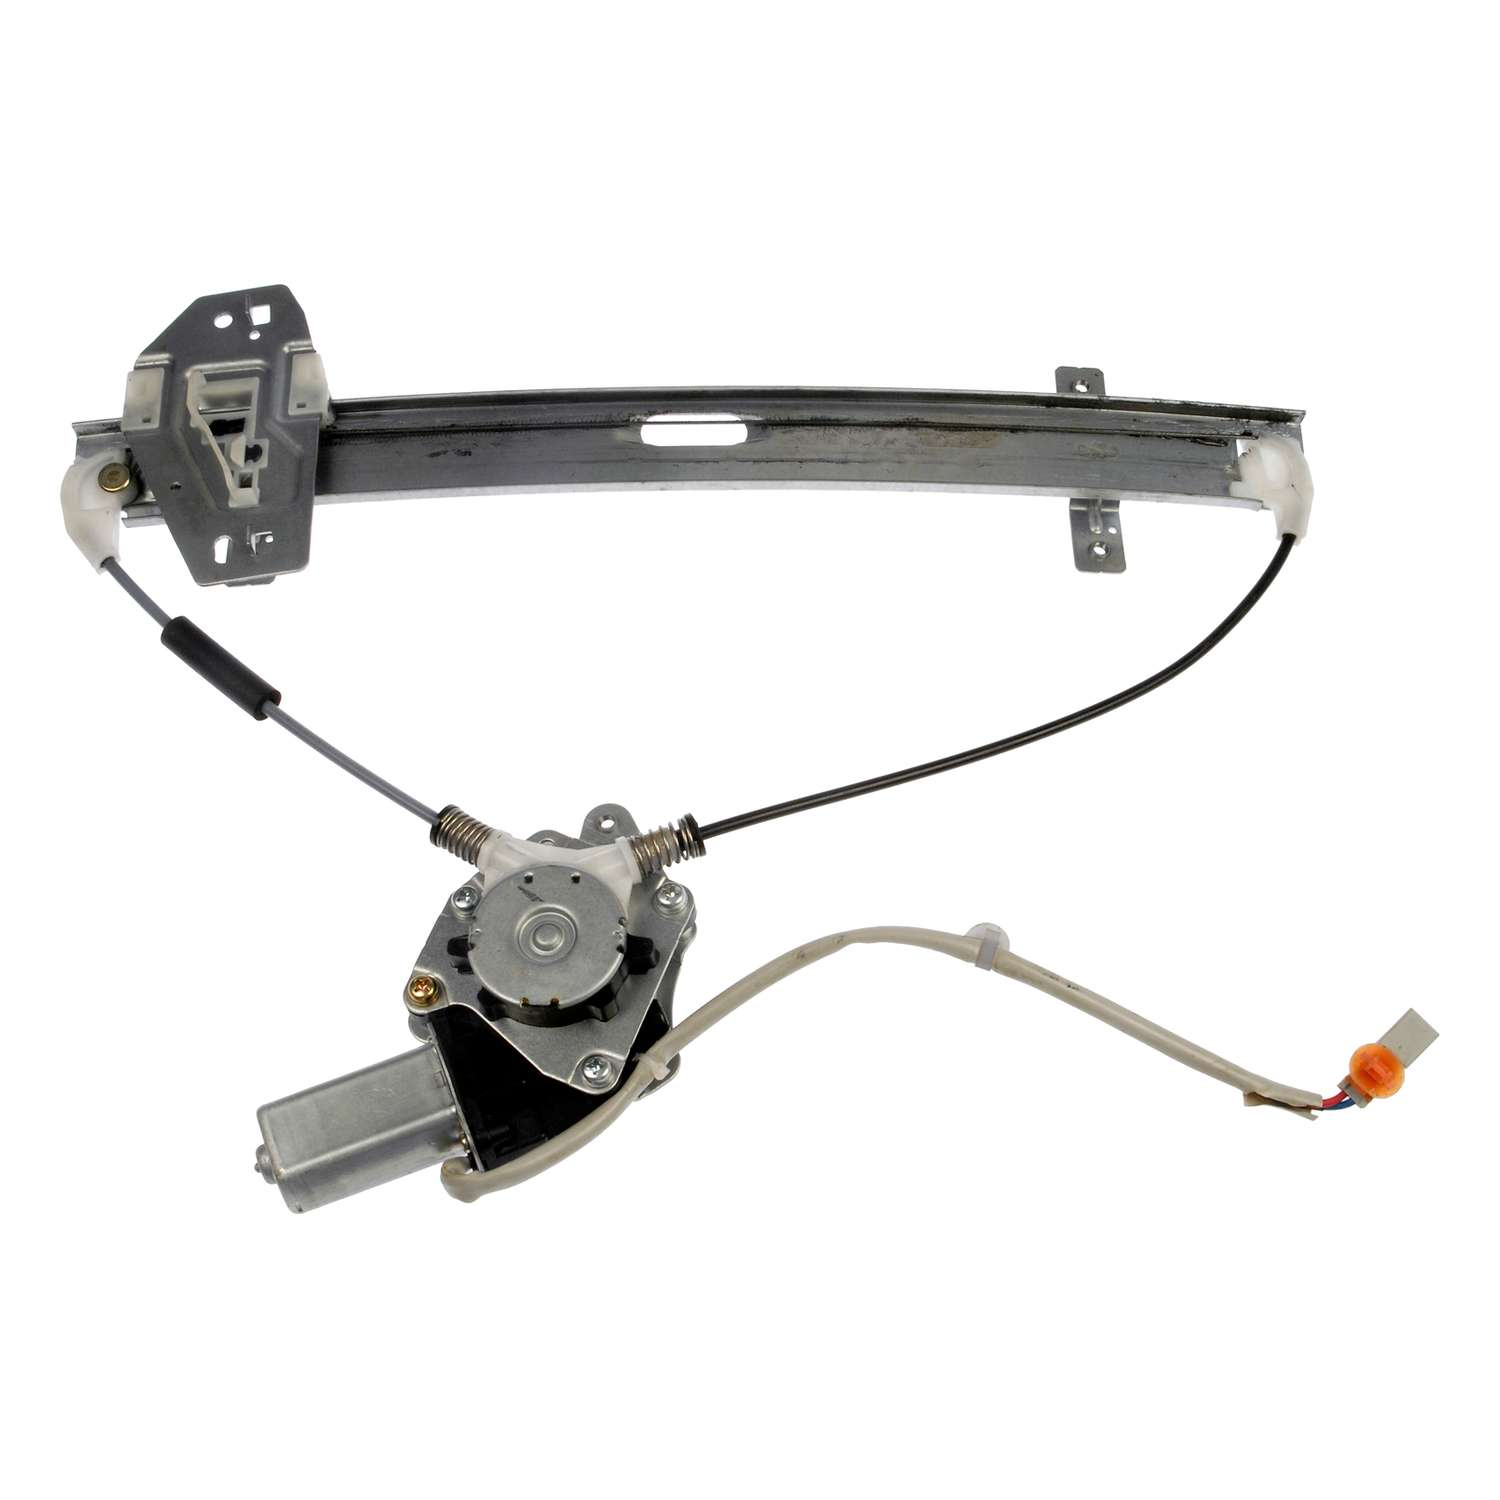 Dorman 741-740 Front Driver Side Replacement Power Window Regulator with Motor for Mazda Prot/ég/é